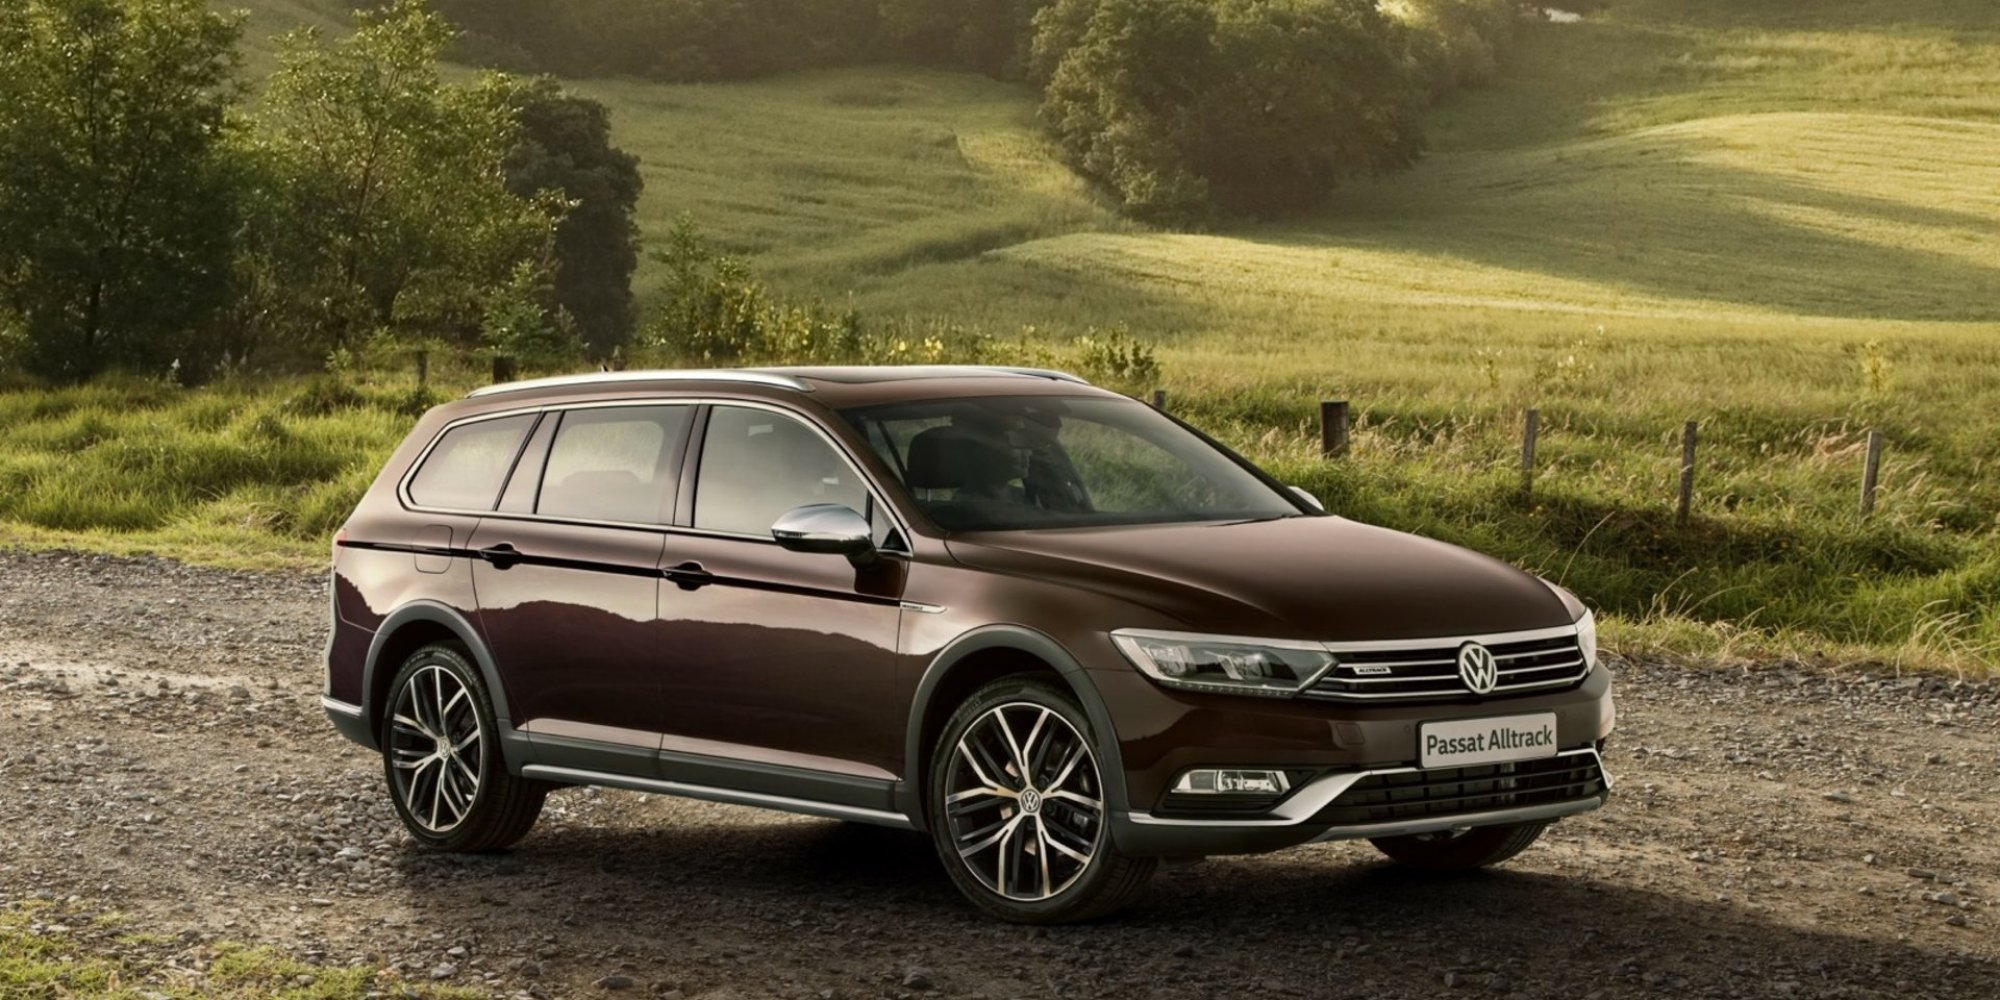 Nissan Of Albertville >> News - 2017 Volkswagen Passat Alltrack Wolfsburg Edition Makes Oz Landing